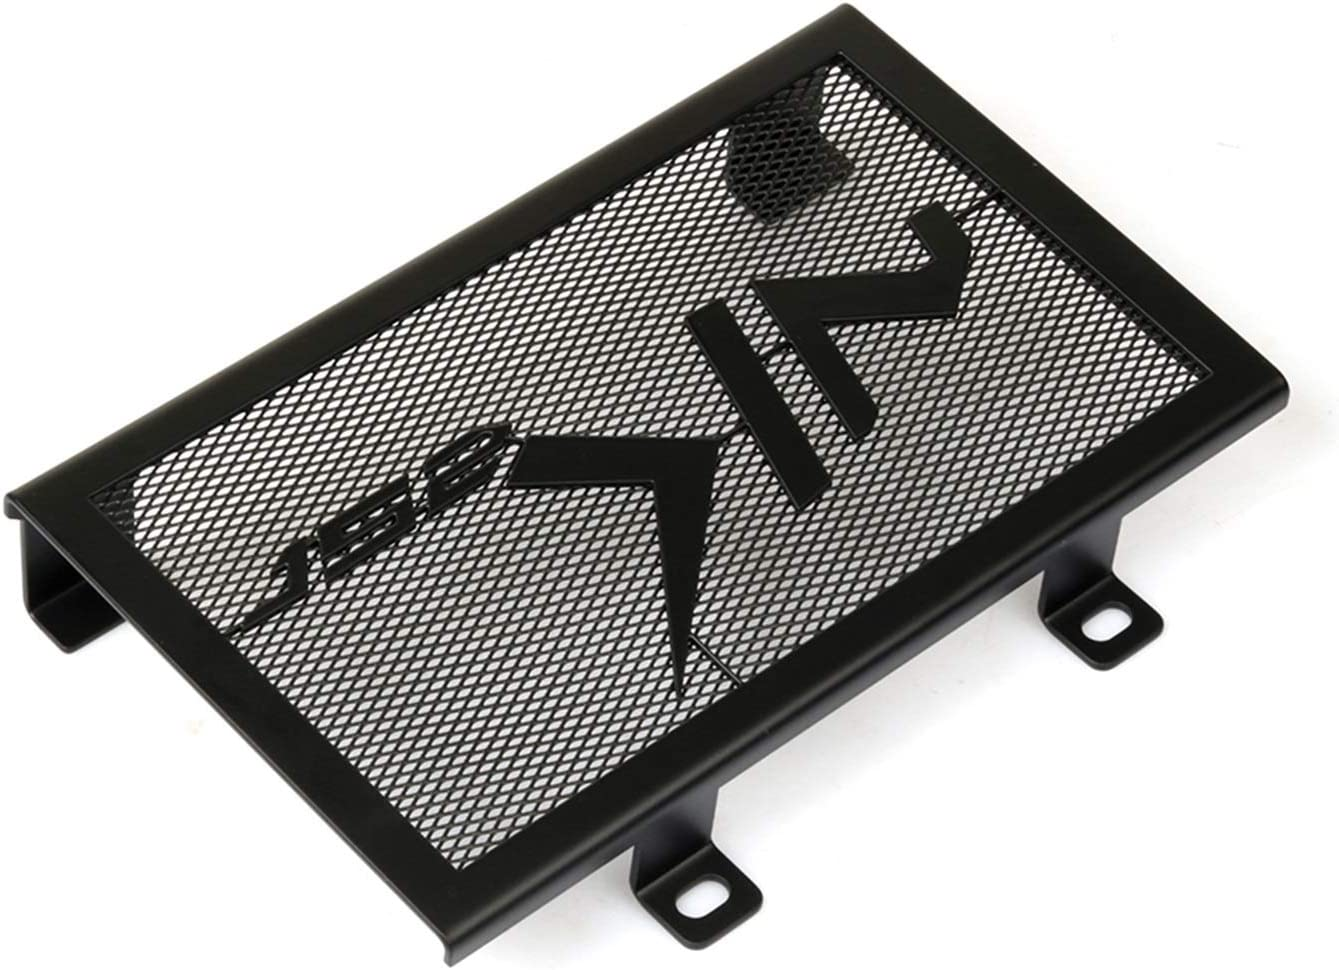 Tatumyin Motorbike Stainless quality assurance Steel Radiator Grill Guard P Grille Selling